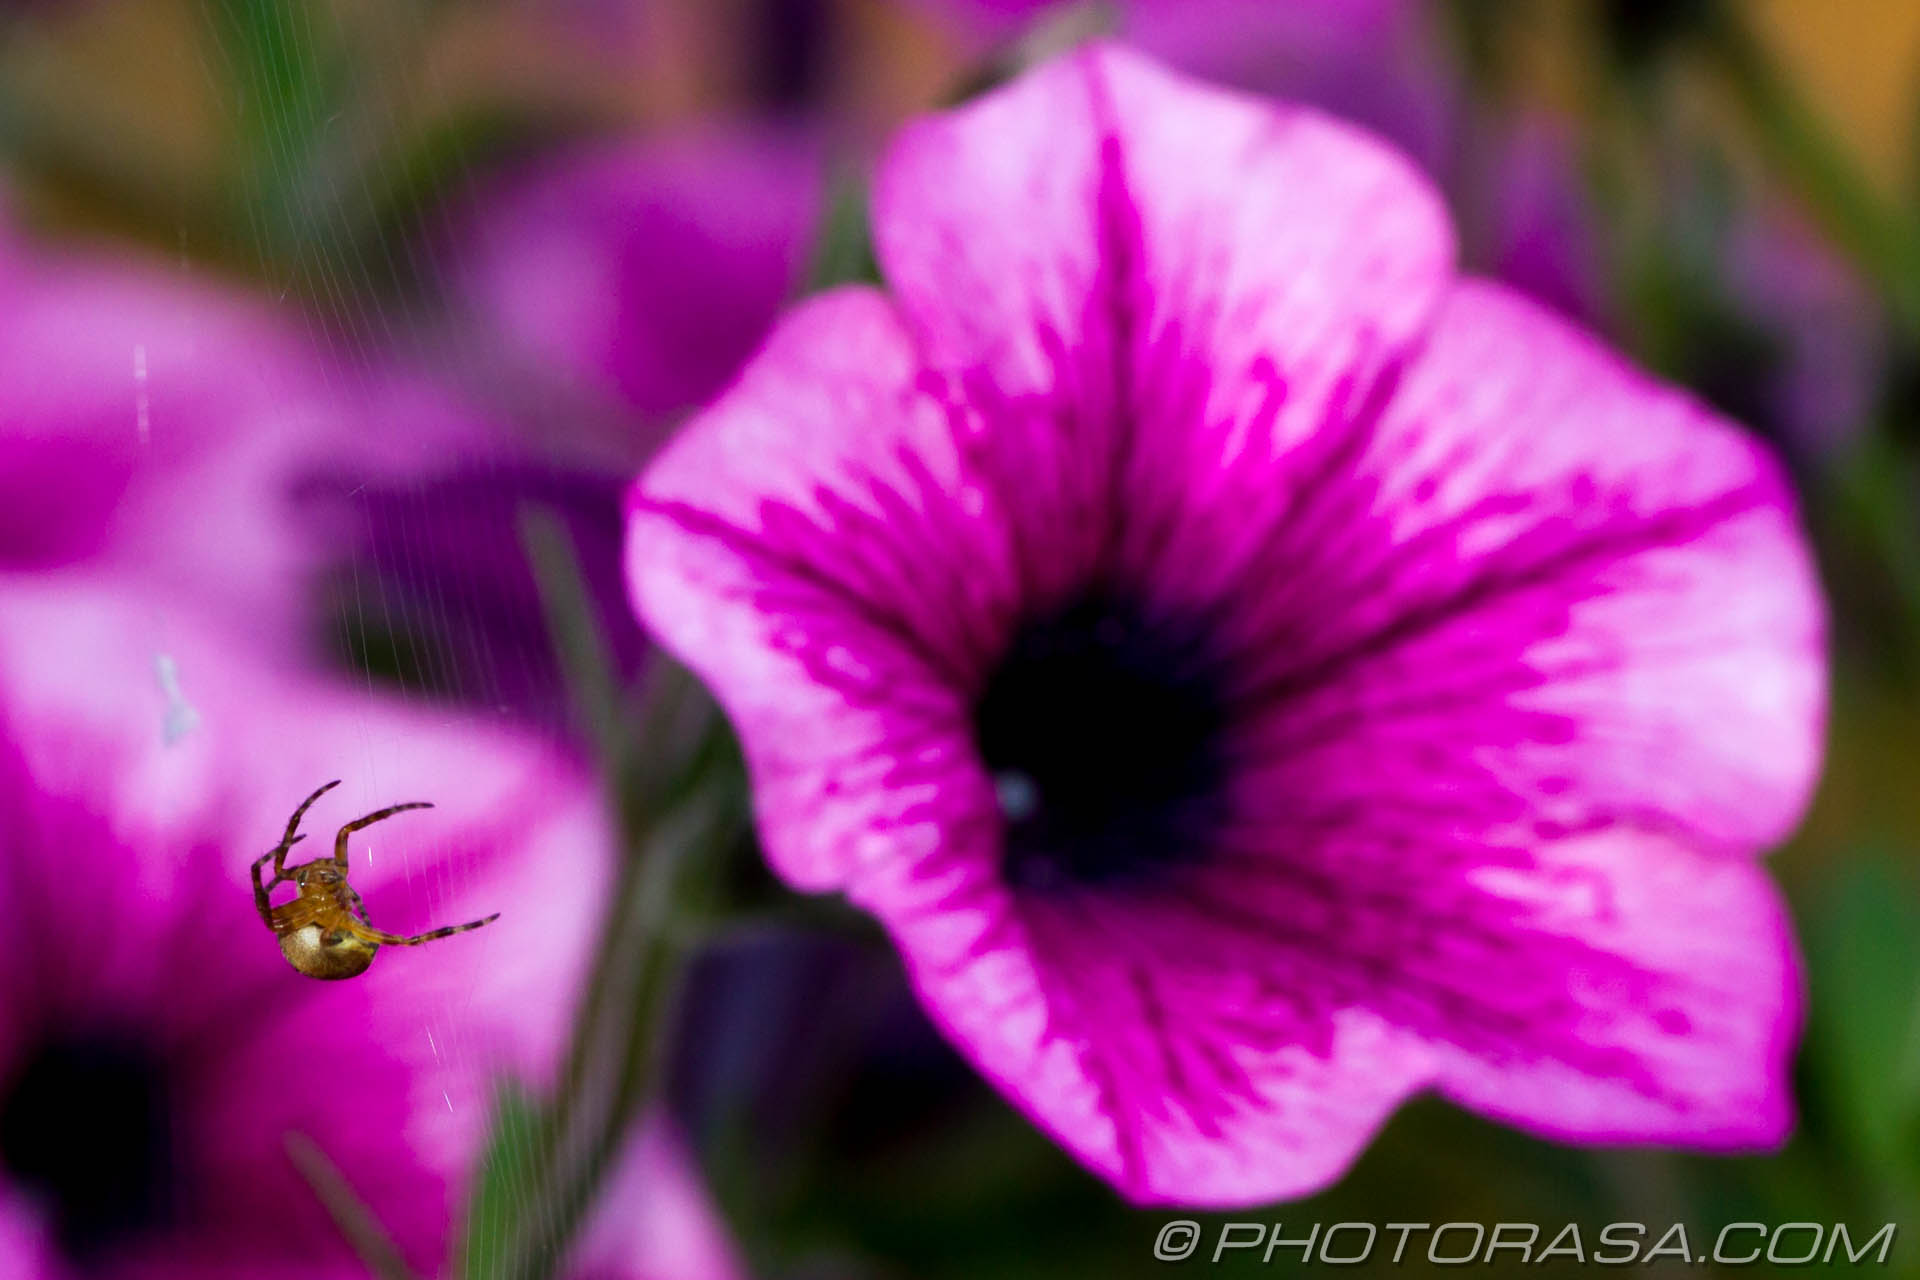 http://photorasa.com/spider-petunias/spider-and-flower/